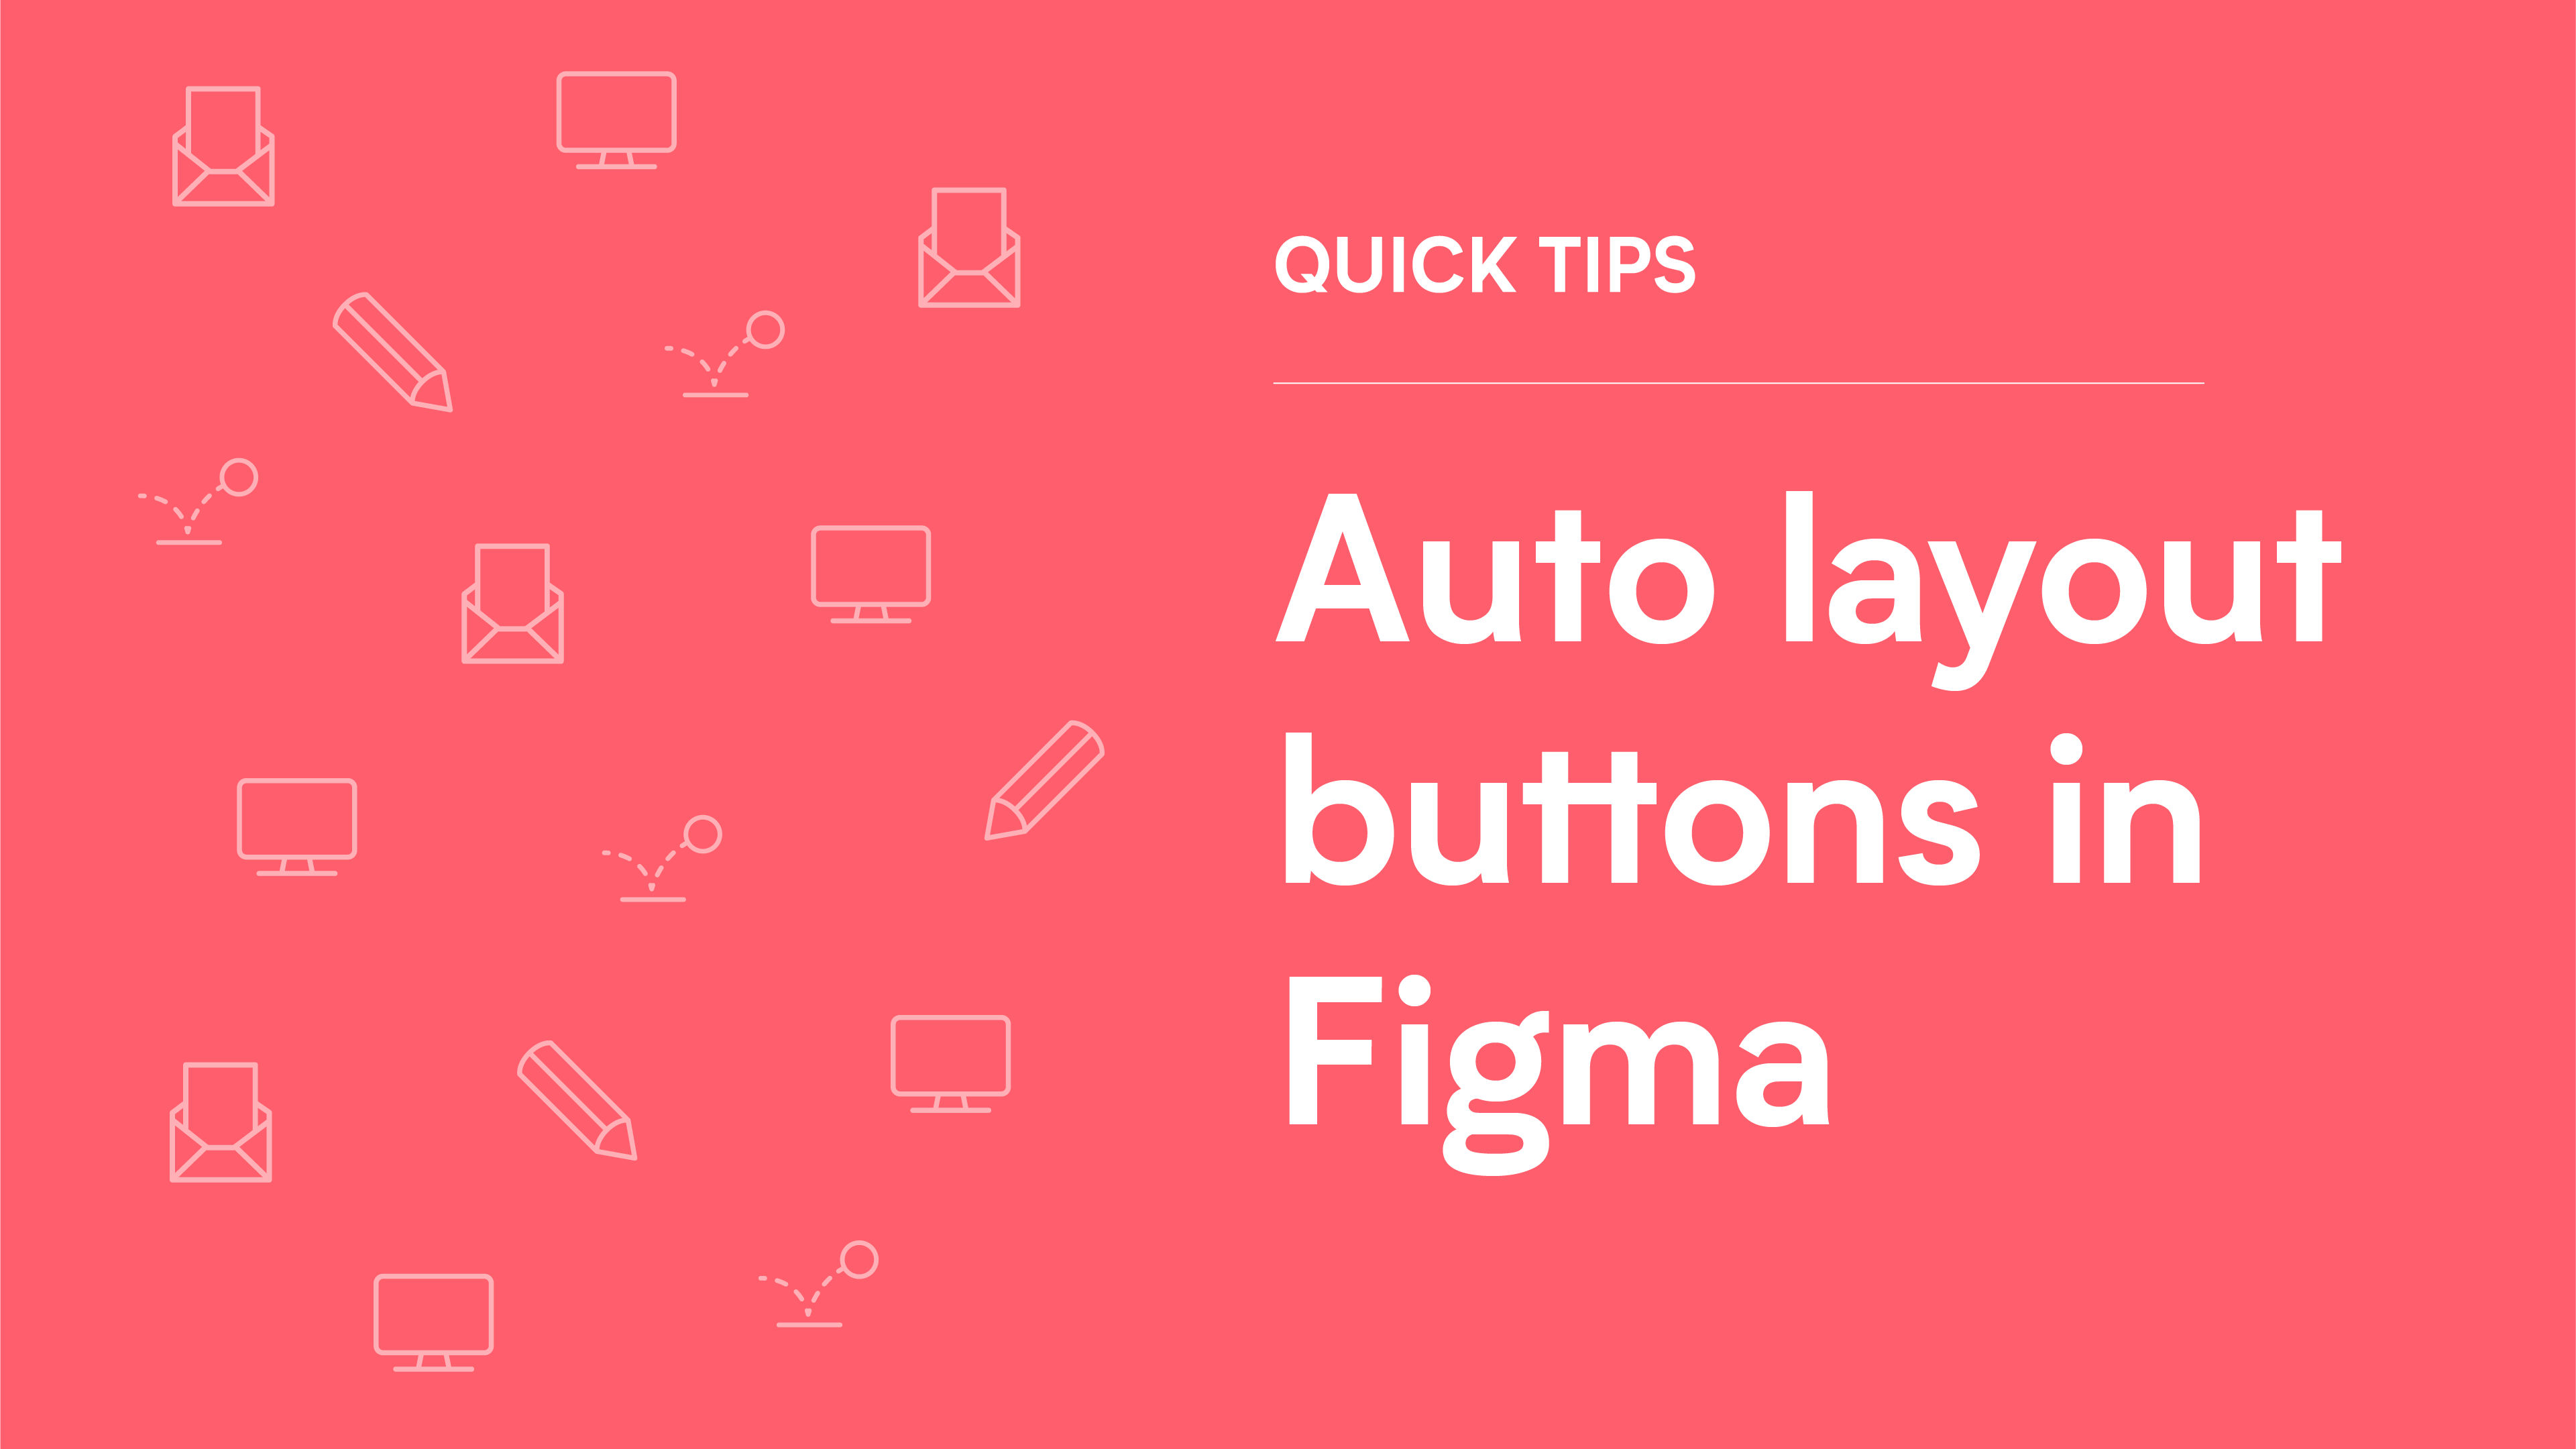 auto layout buttons in Figma